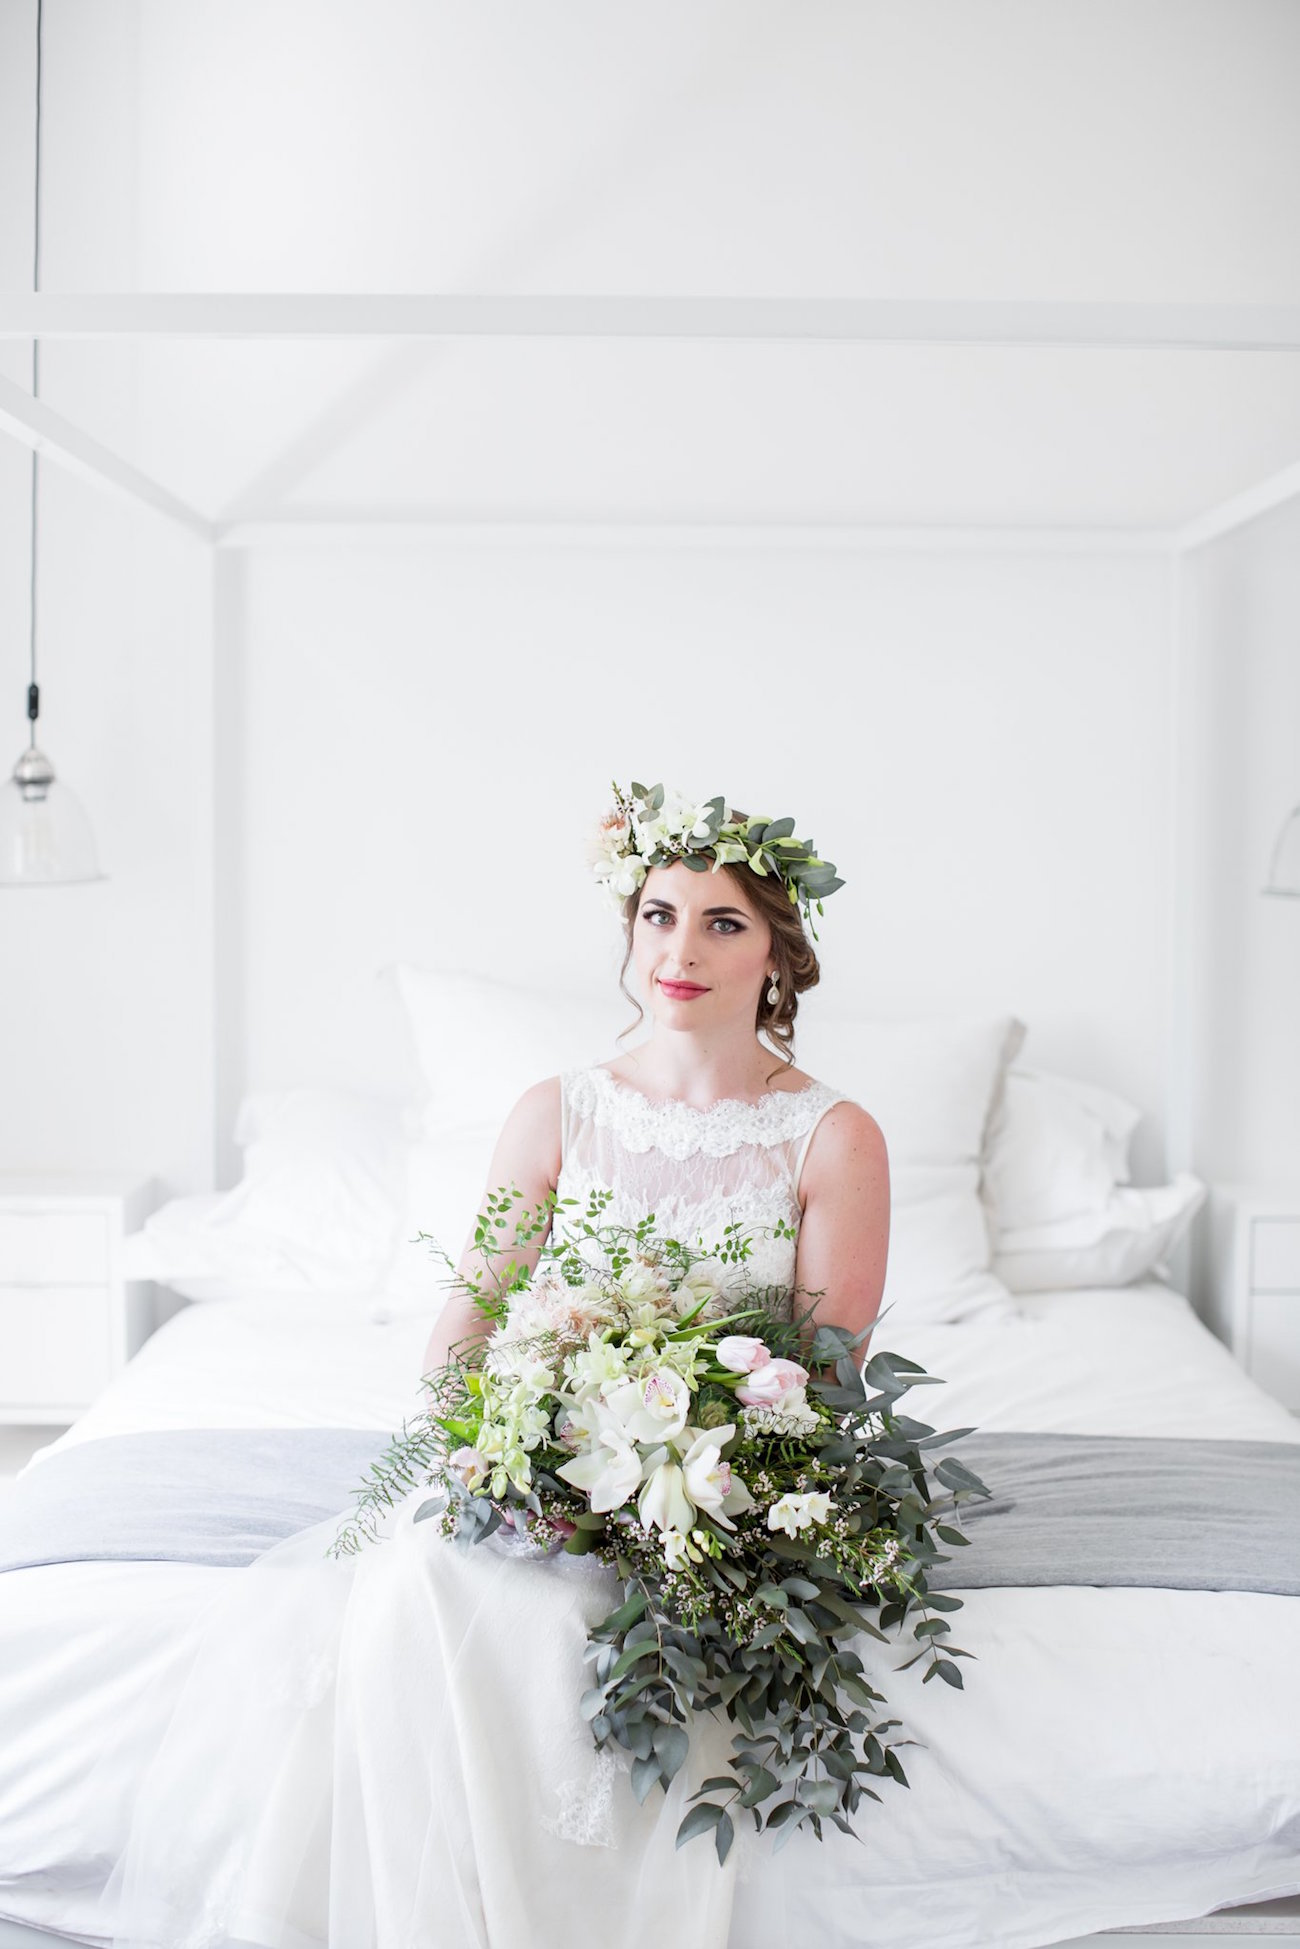 Greenery Wedding Bouquet | Image: JCclick